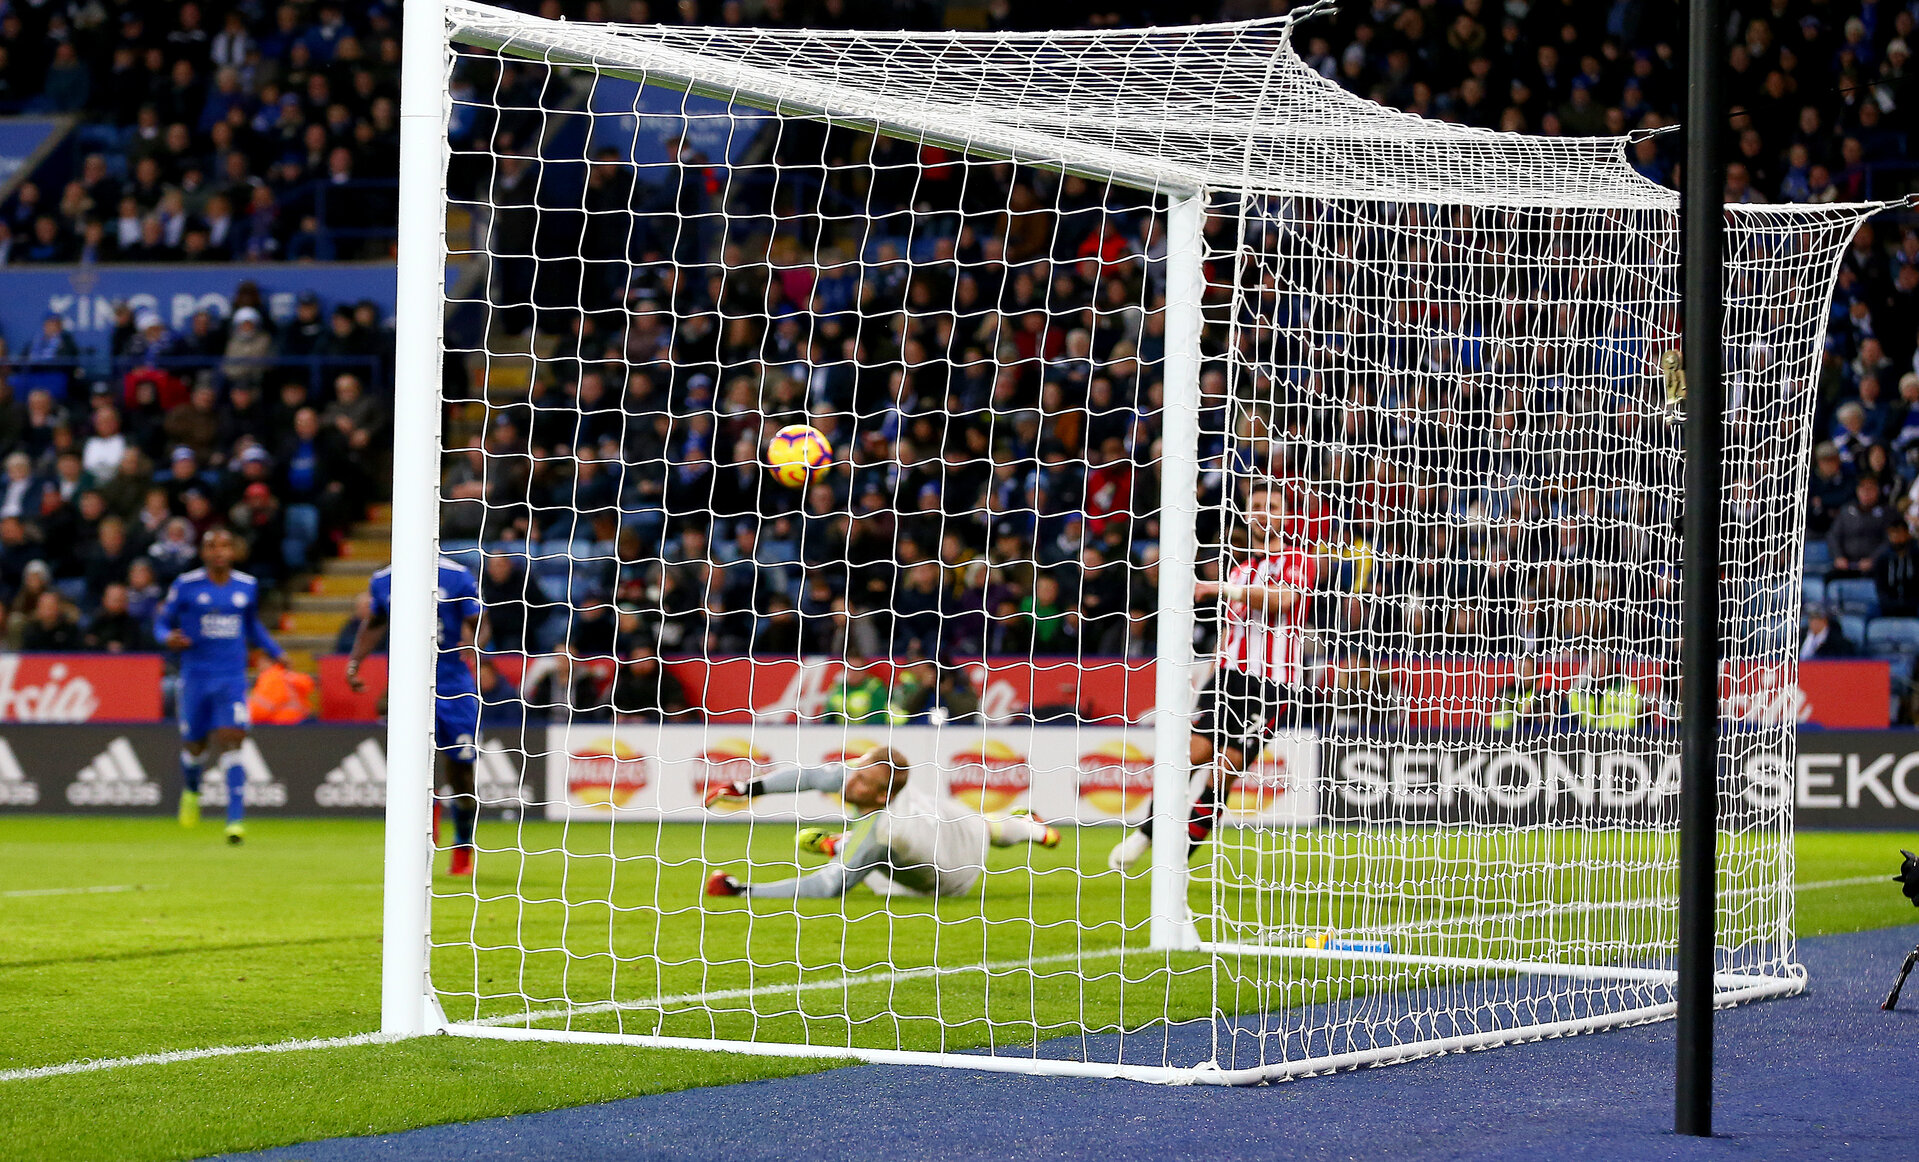 LEICESTER, ENGLAND - JANUARY 12: Shane Long of Southampton scores during the Premier League match between Leicester City and Southampton FC at The King Power Stadium on January 12, 2019 in Leicester, United Kingdom. (Photo by Matt Watson/Southampton FC via Getty Images)